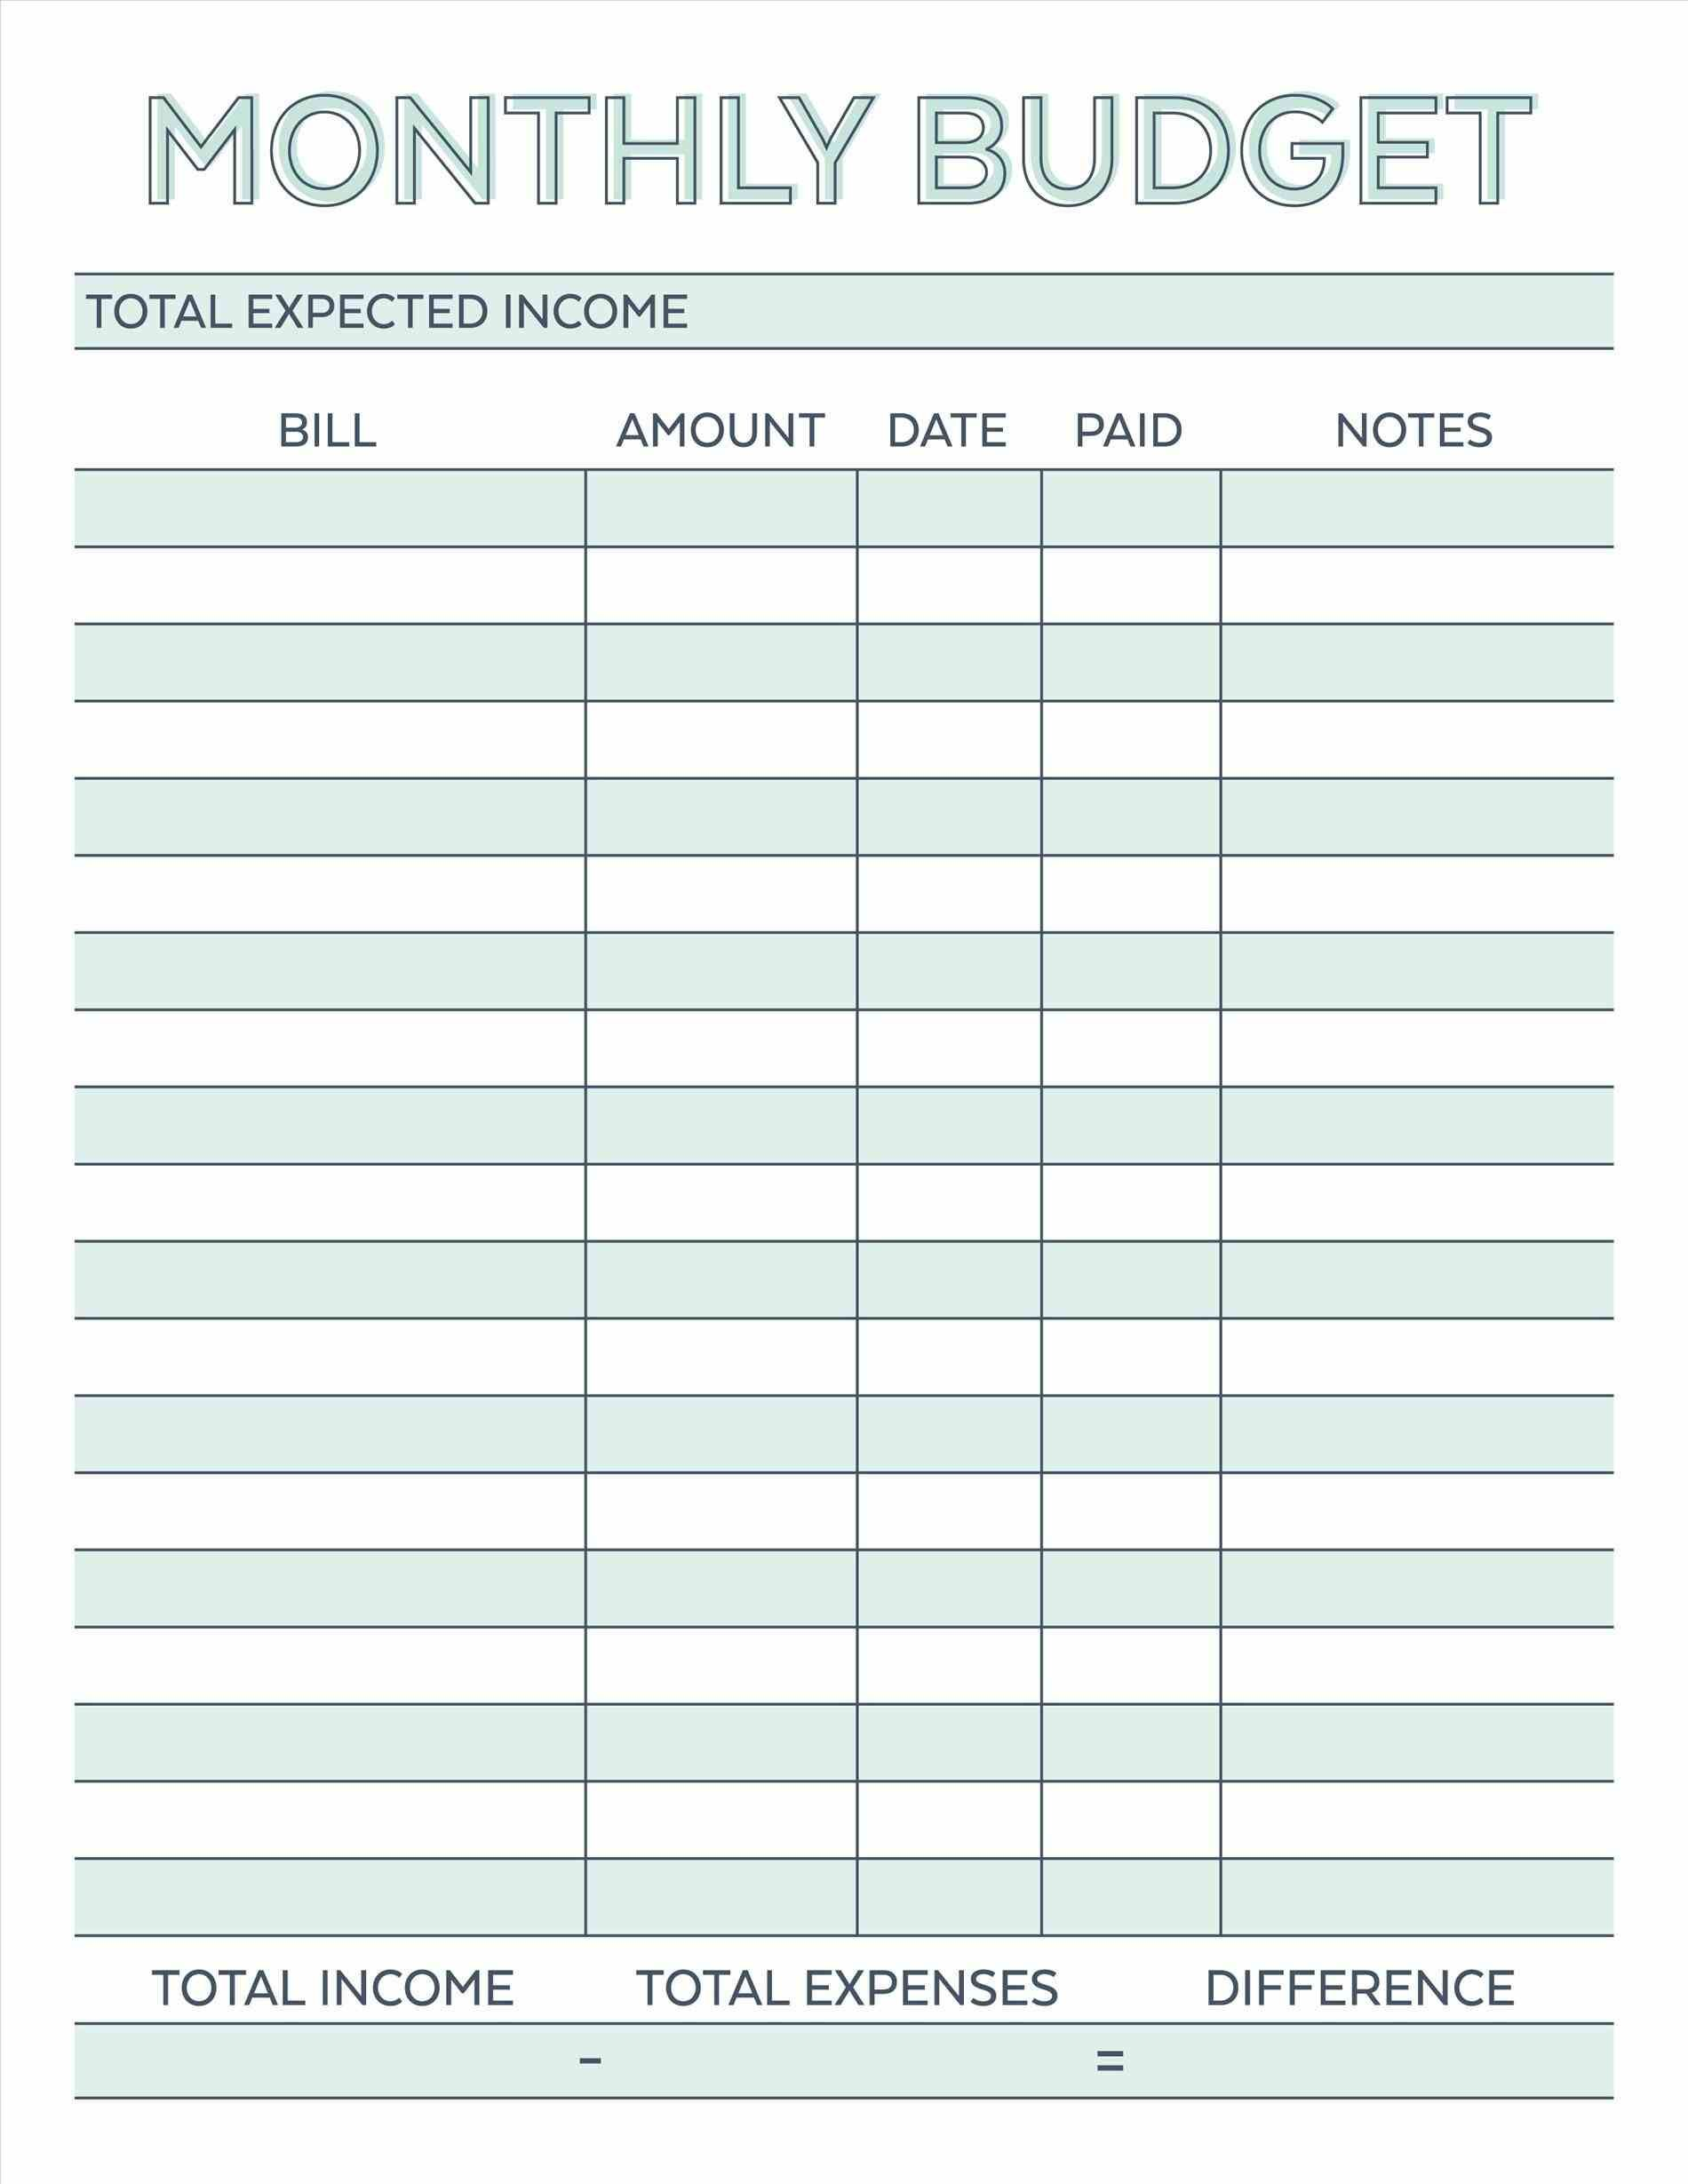 Budget planner planner worksheet monthly bills template for Budgeting sheets template